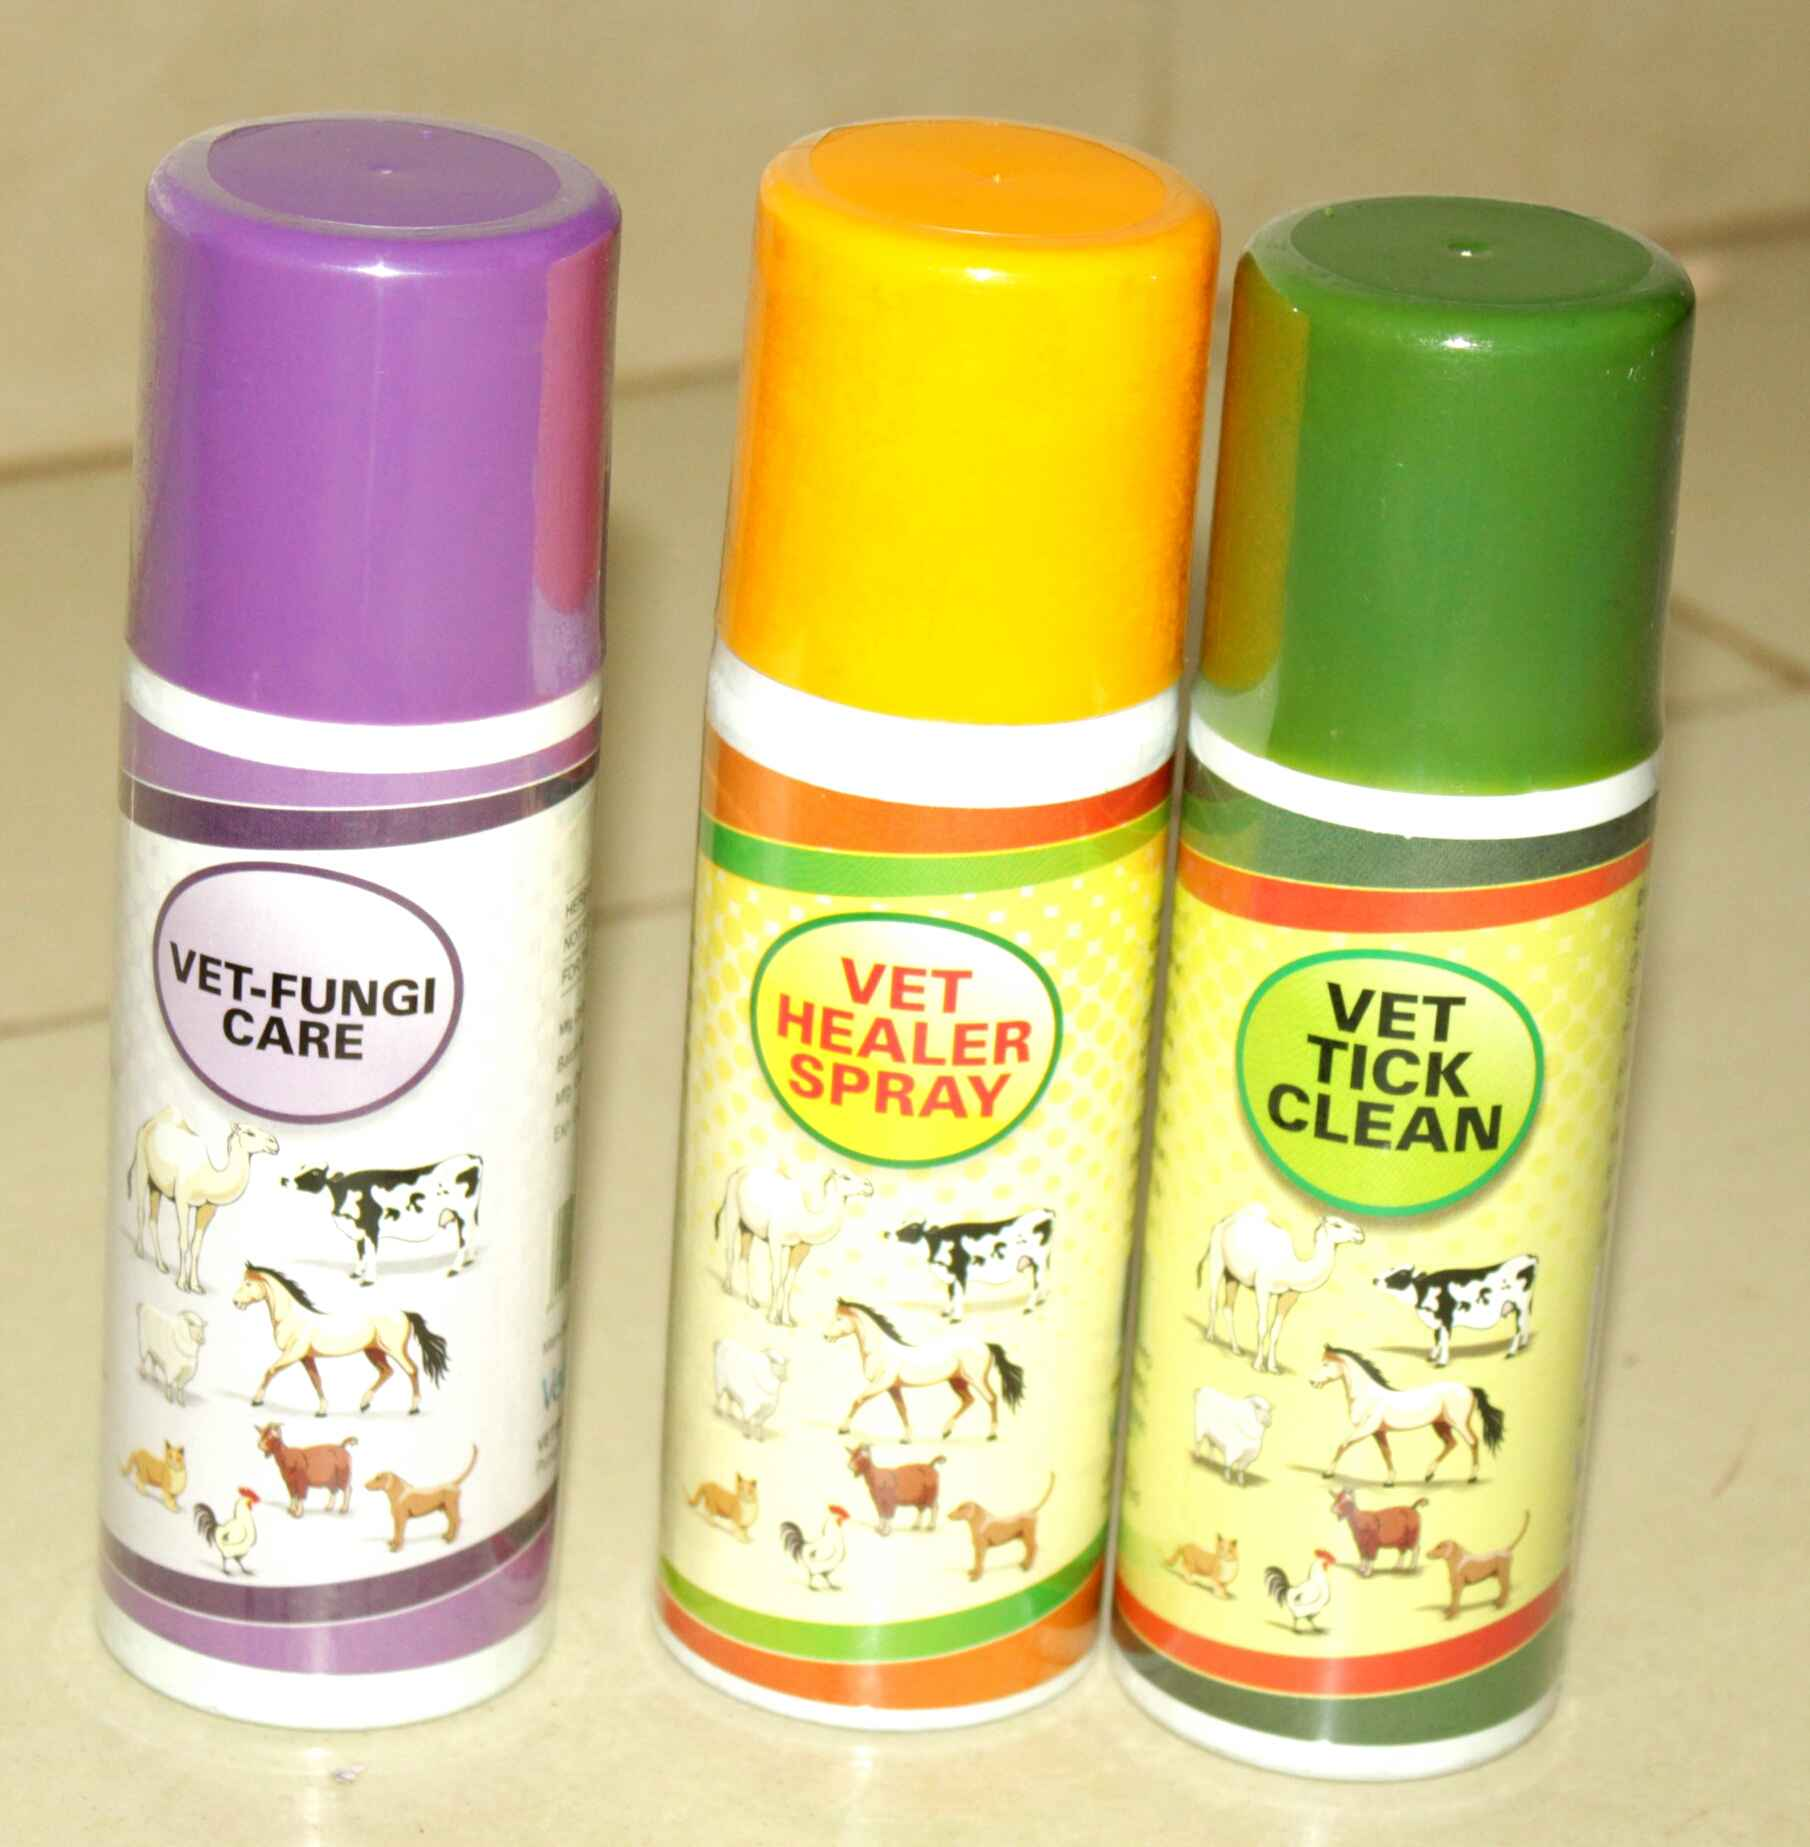 VET FUNGAL CARE, VET HEALER SPRAY and VET TICK CLEAN